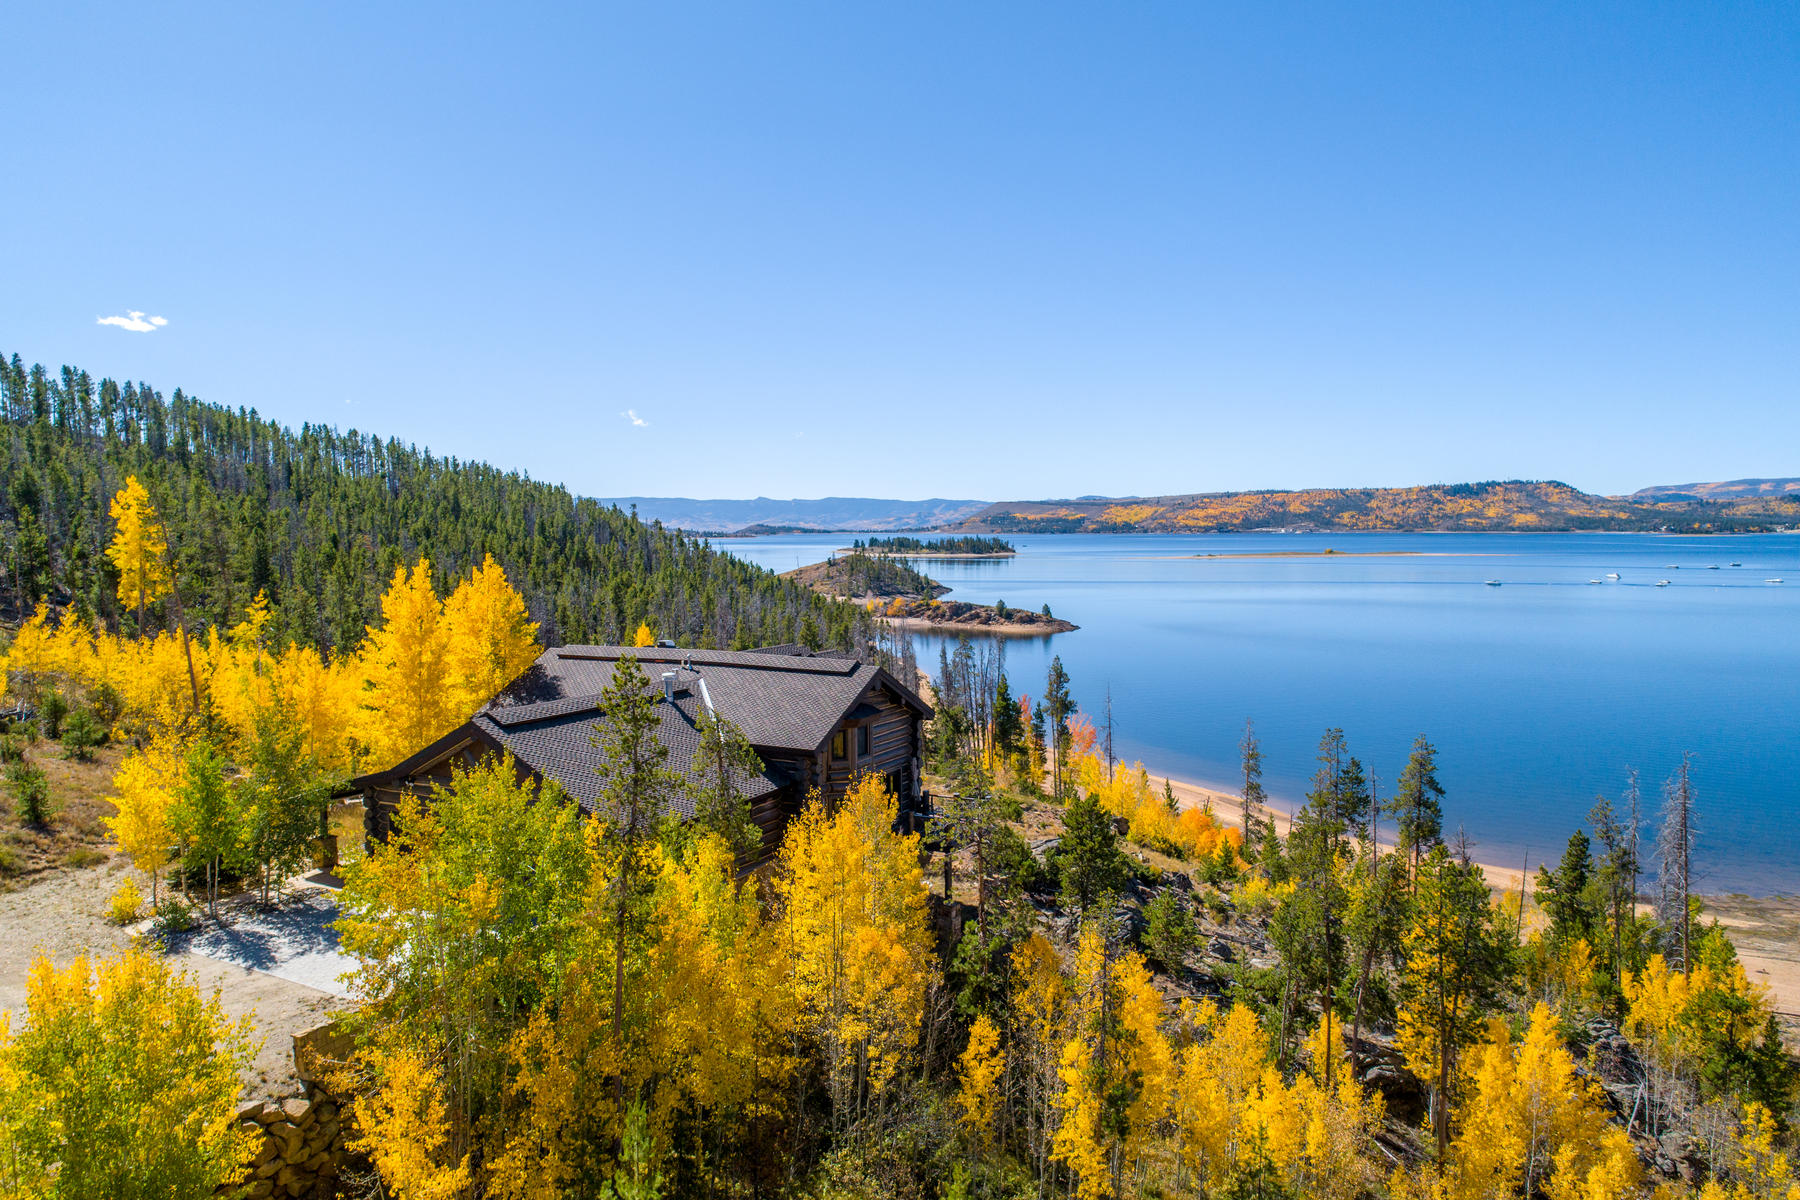 200 Hummingbird Lane - Grand Lake, CO - Melinda V Lee LIV Sothebys